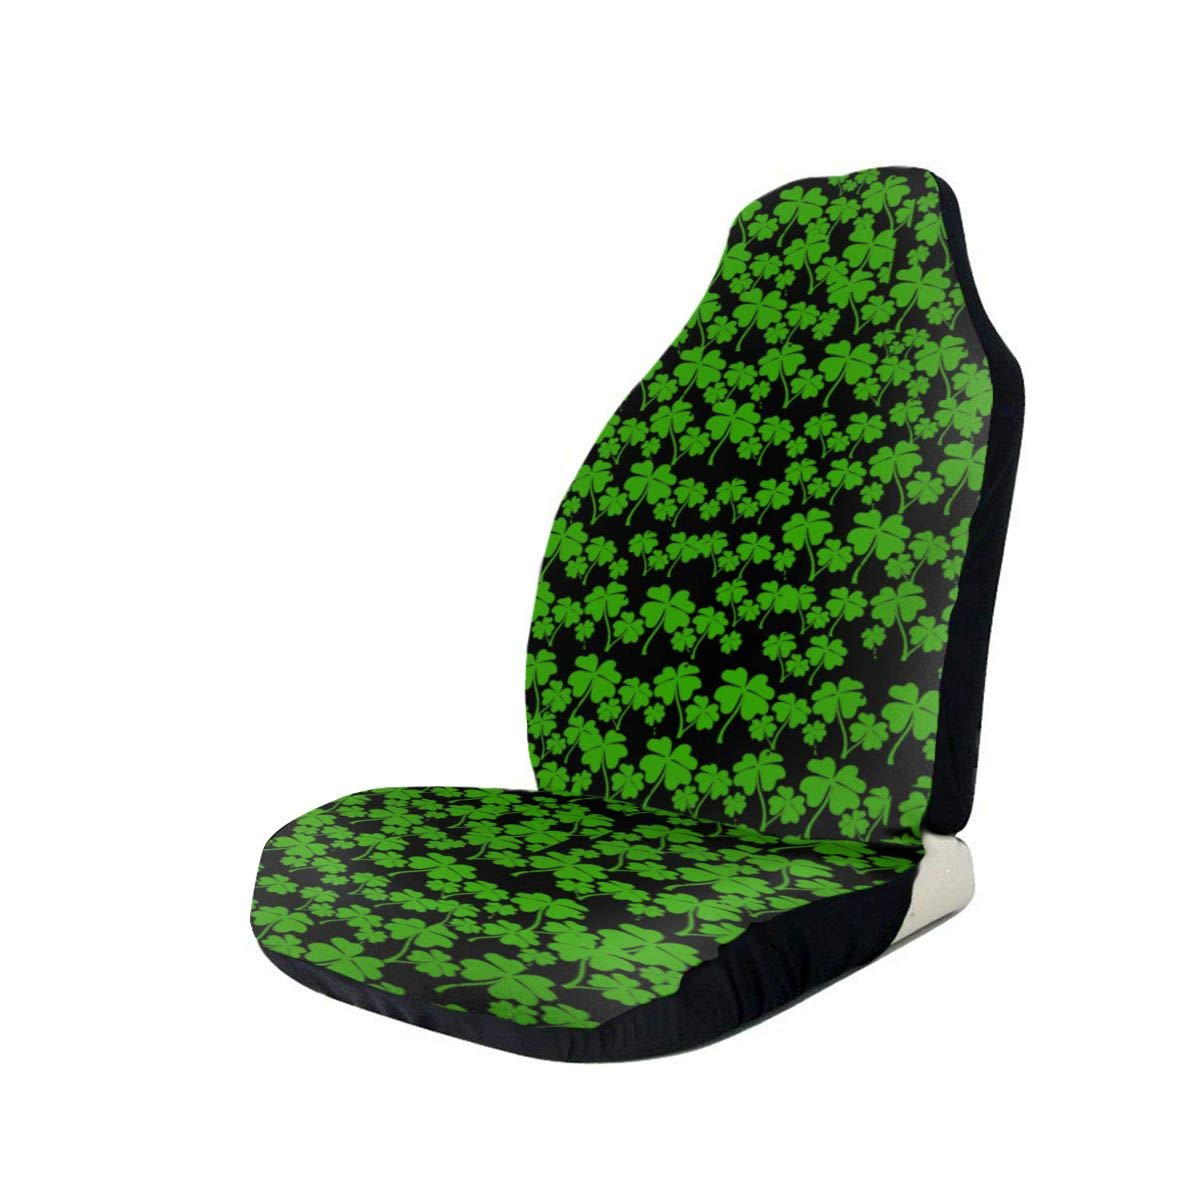 Max 75% OFF Clovers Car Seat Covers for Universal Printing Vehicles 3D Cheap super special price S